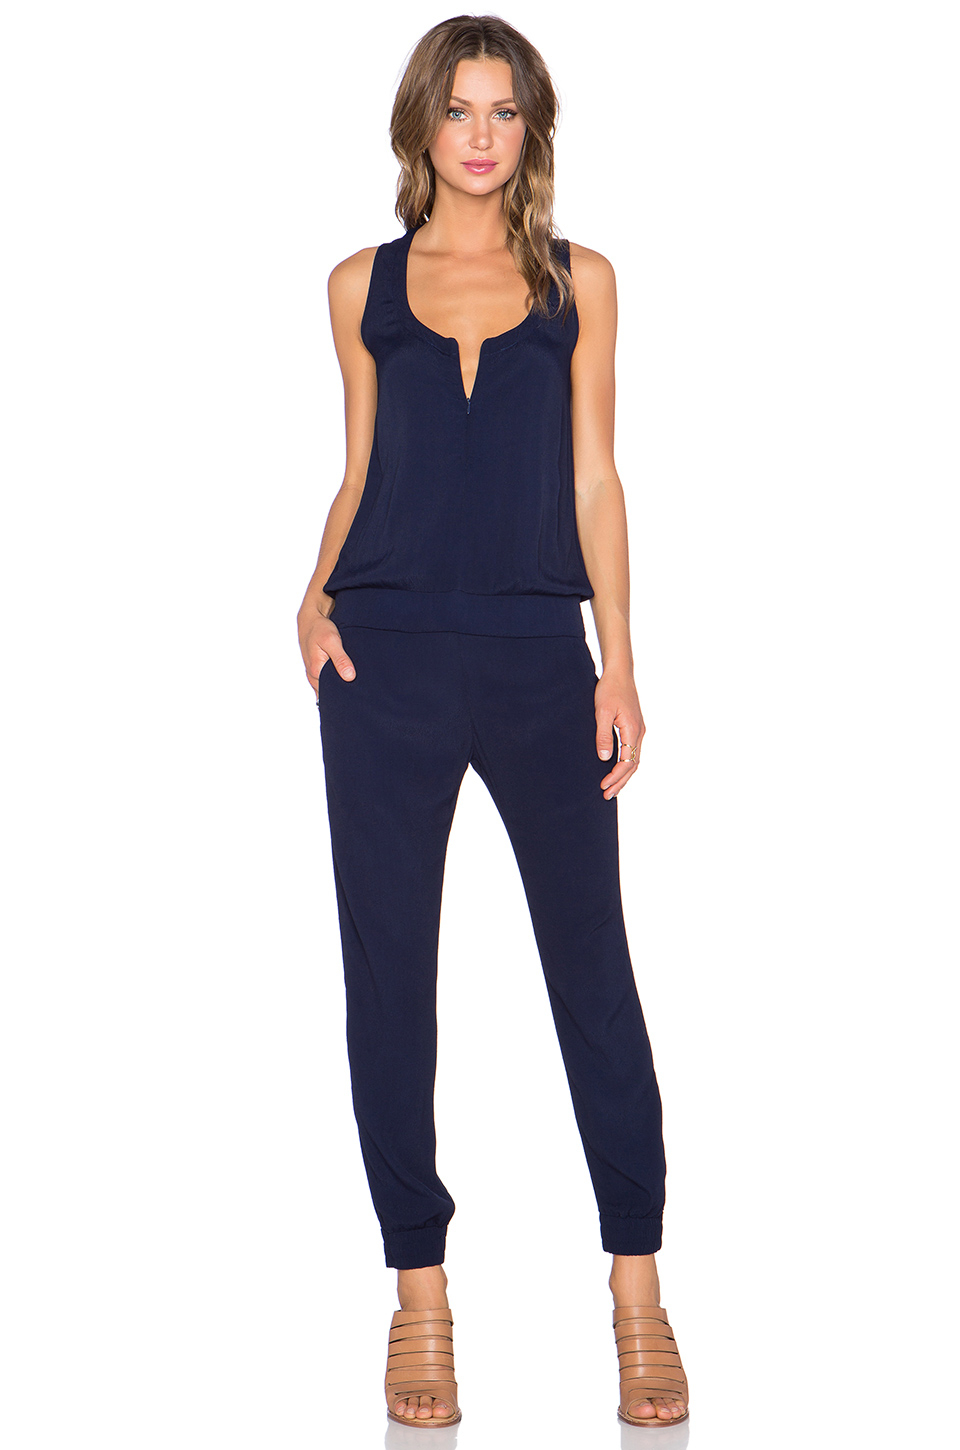 Short Sleeved Navy Blue plus size jumpsuits and playsuits; plus sized KOH KOH Womens Sexy Sleeveless Wide Leg Pants Cocktail Pantsuit Jumpsuit Romper. by KOH KOH. $ - $ $ 29 $ 46 45 Prime. FREE Shipping on eligible orders. Some sizes/colors are .